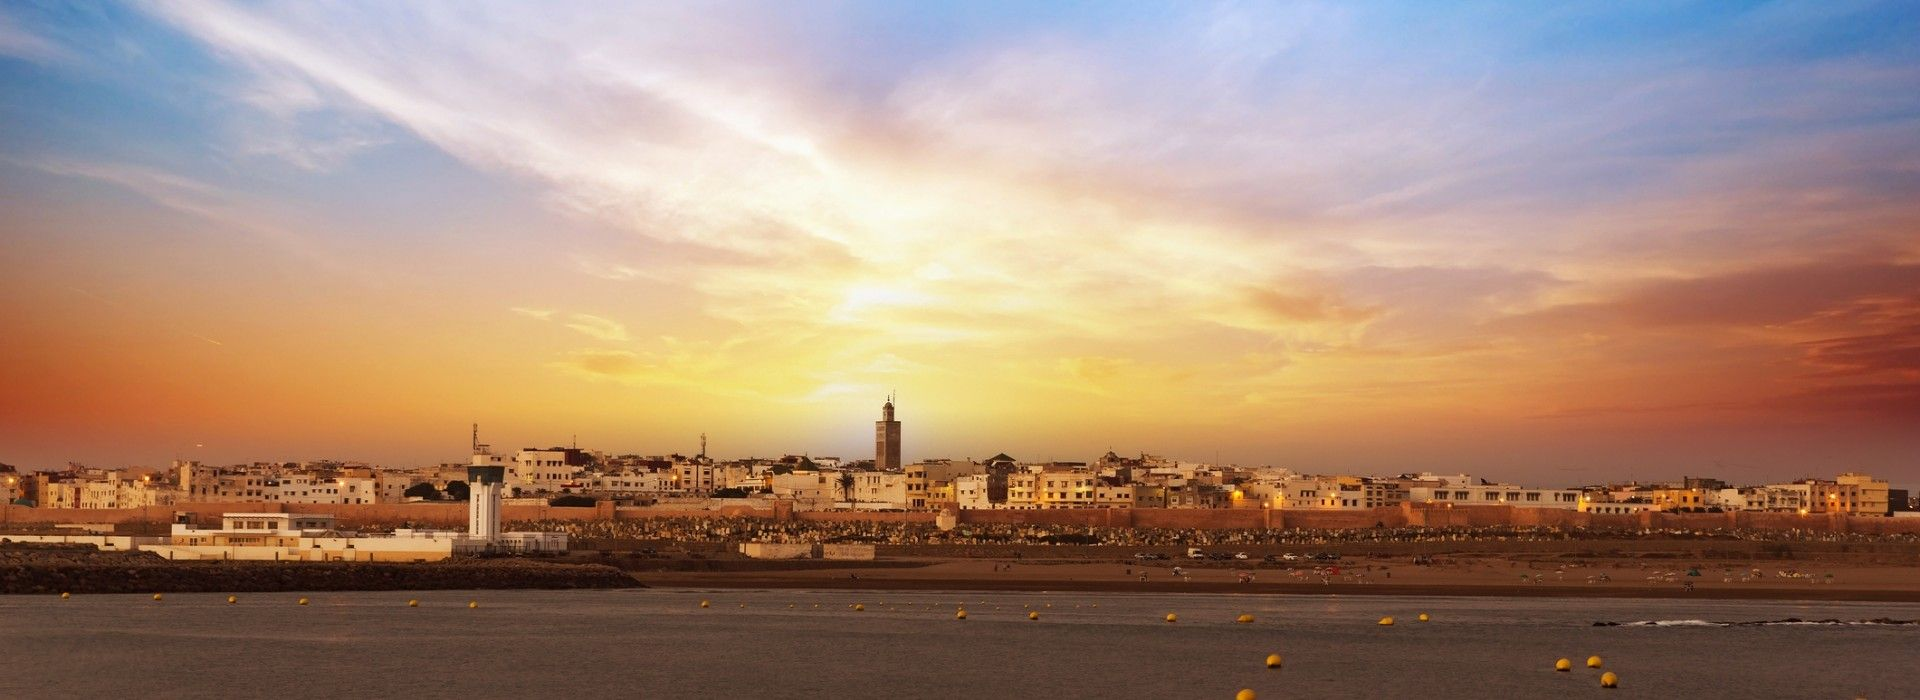 Beach, romance, getaways and relaxation Tours in Morocco